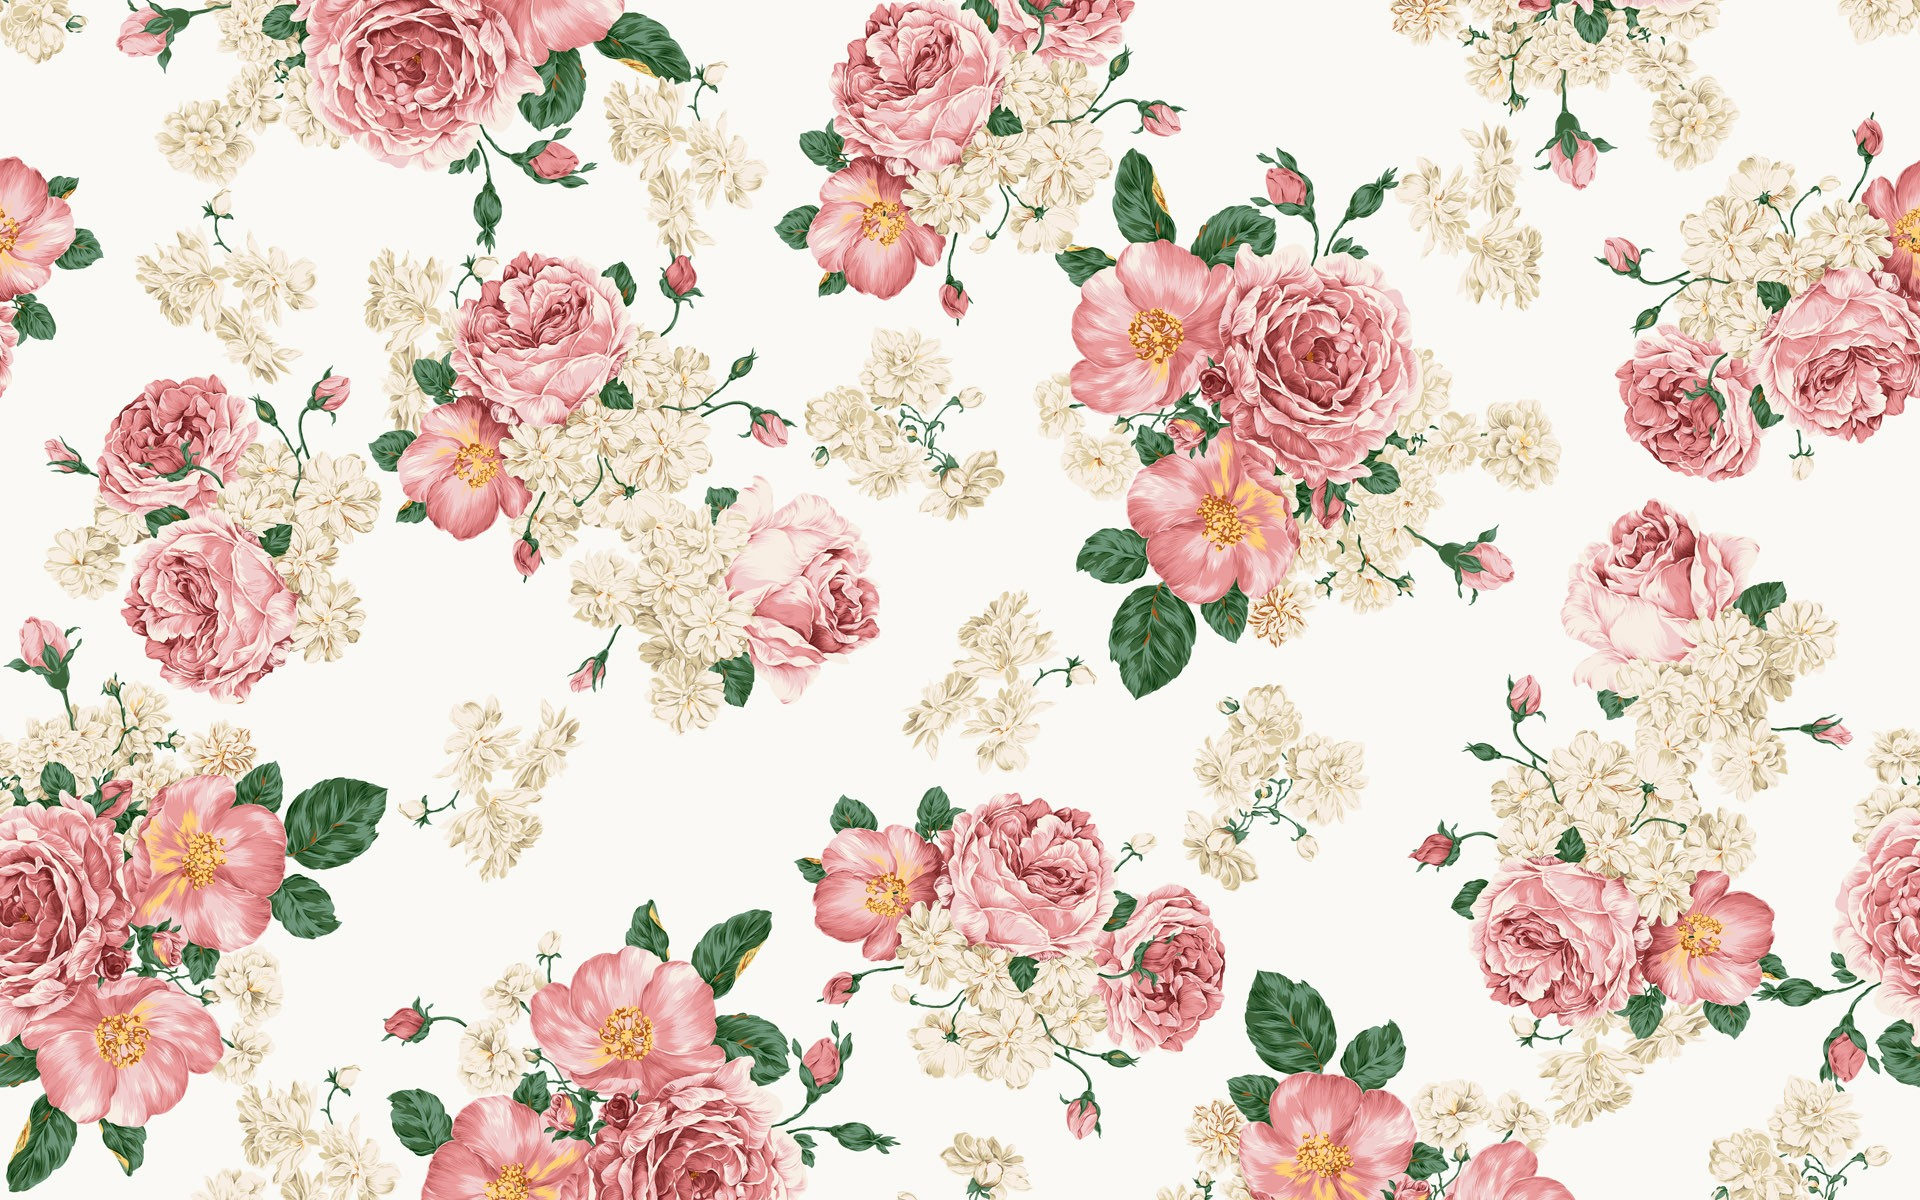 Vintage Flower Tumblr wallpaper | 1920x1200 | #23693